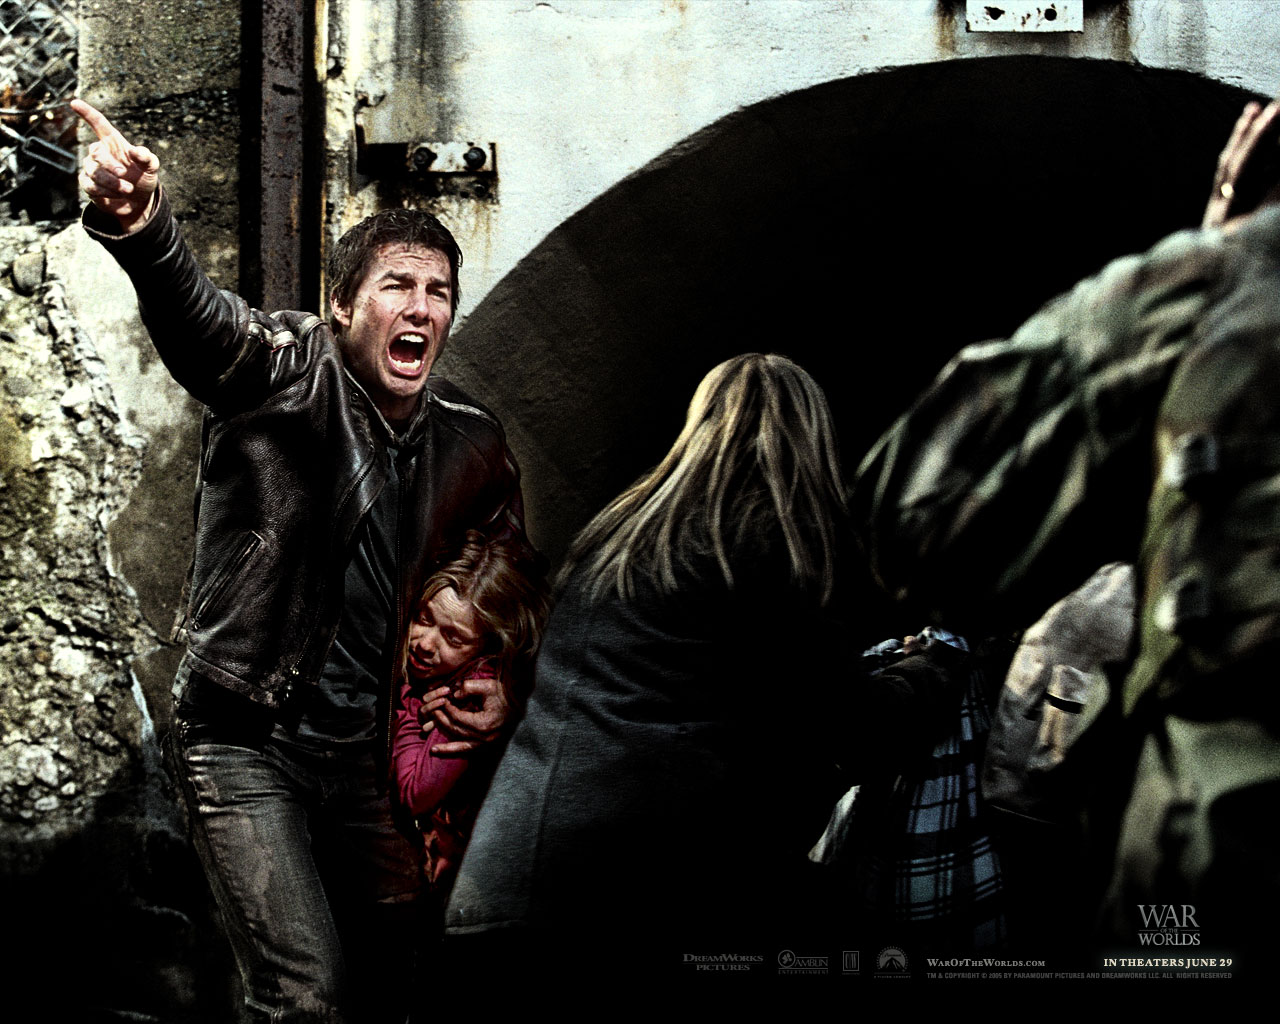 Tom Cruise   Tom Cruise in War of the Worlds Wallpaper 28 800x600 1280x1024